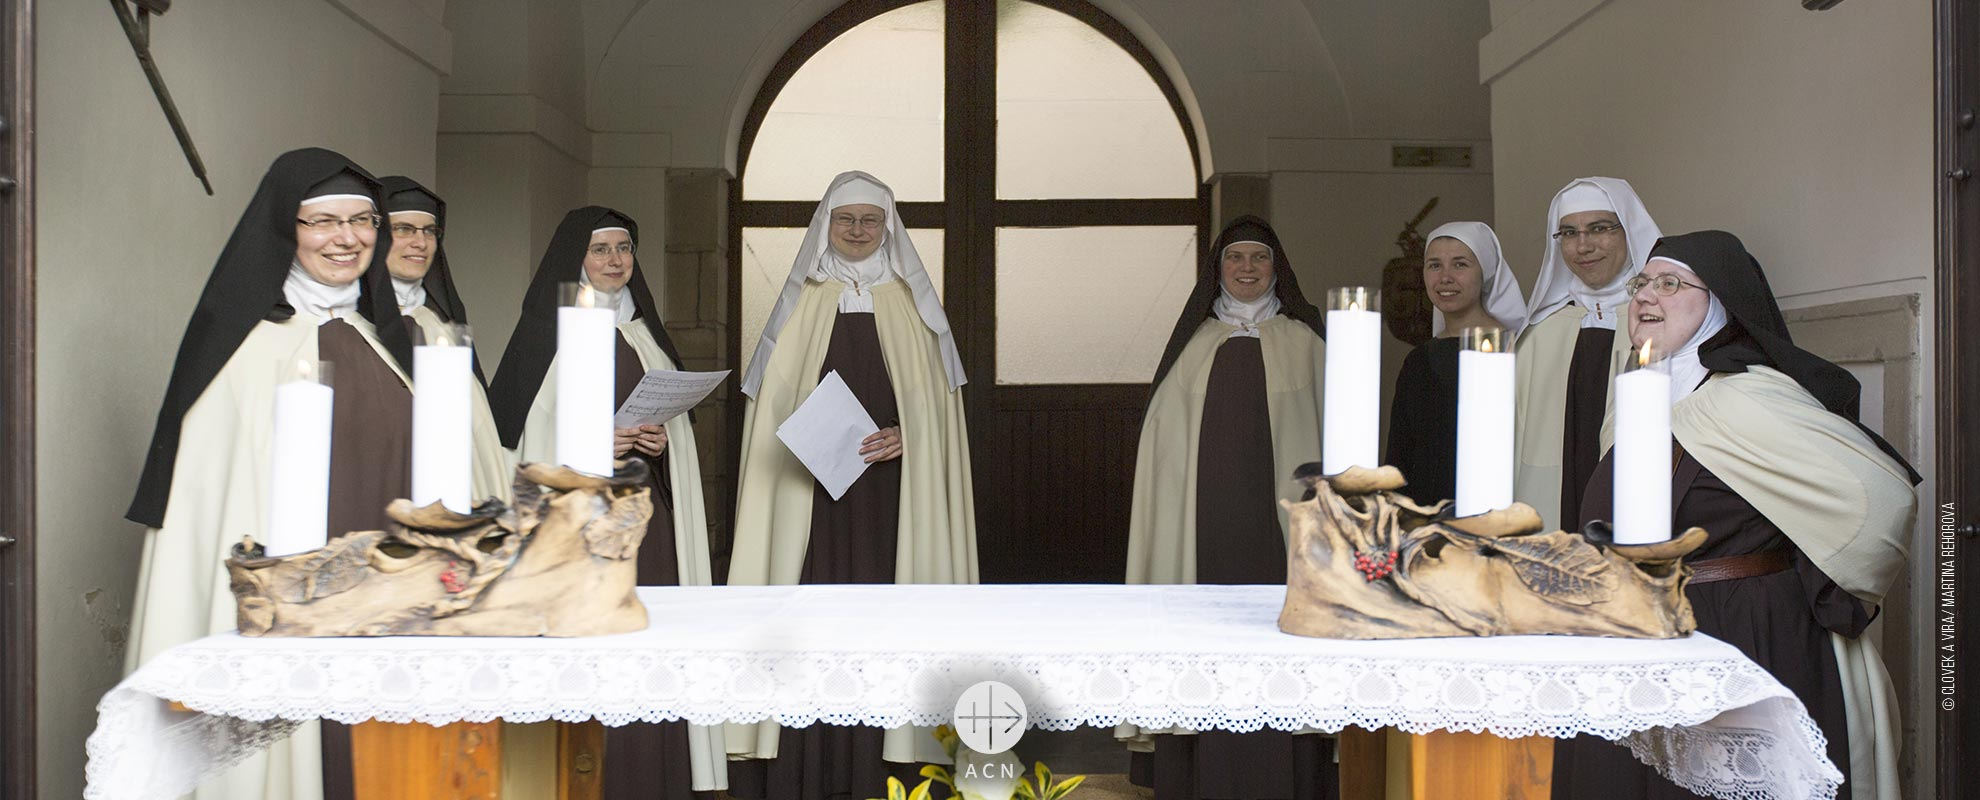 Czech Republic: Support for the contemplative Carmelite Sisters in Prague